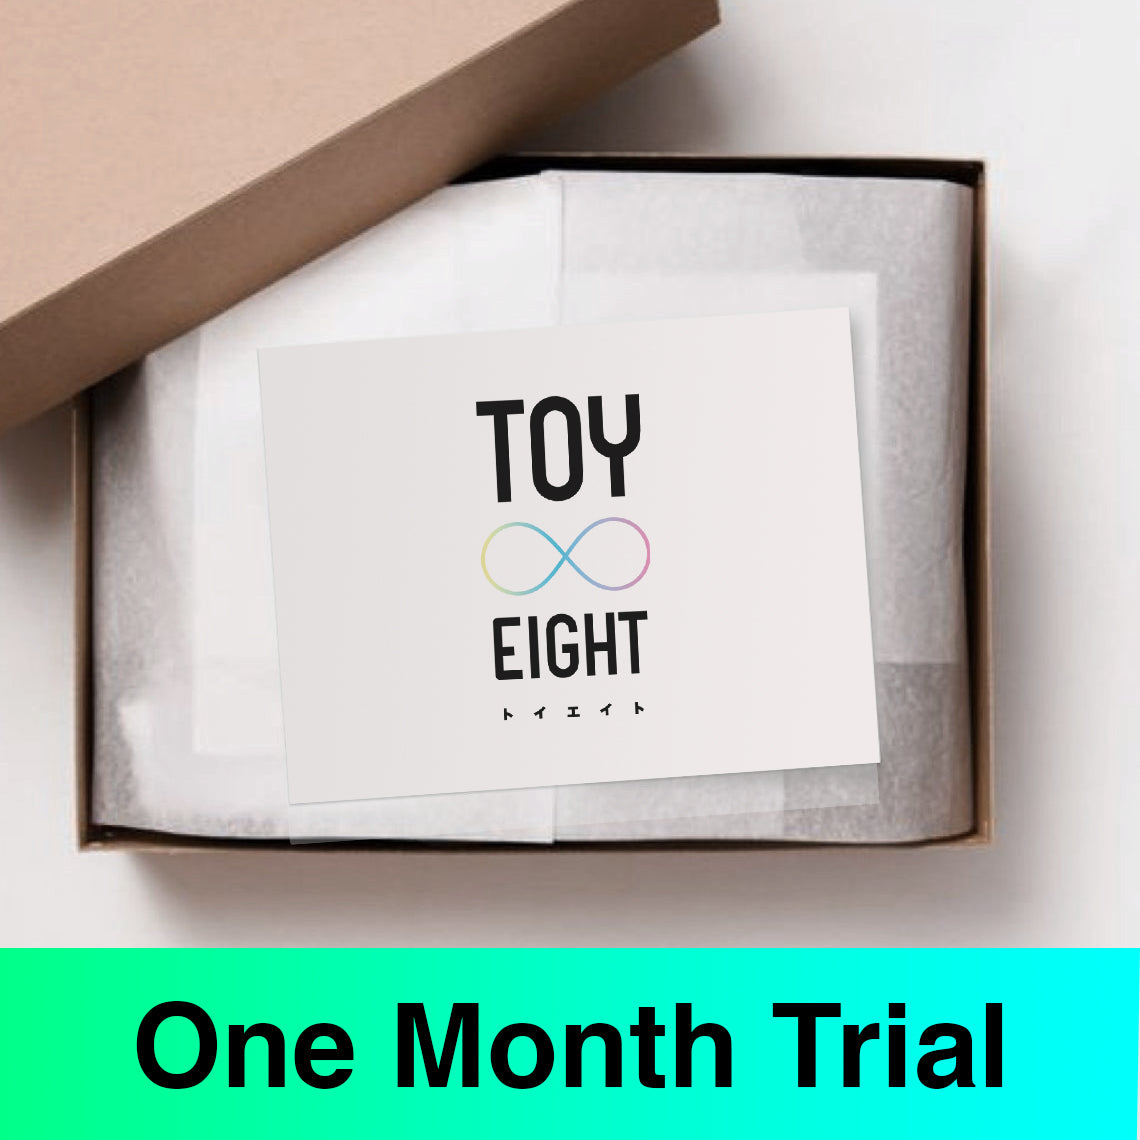 TOY8 One Month Trial Box for 3-5 years old